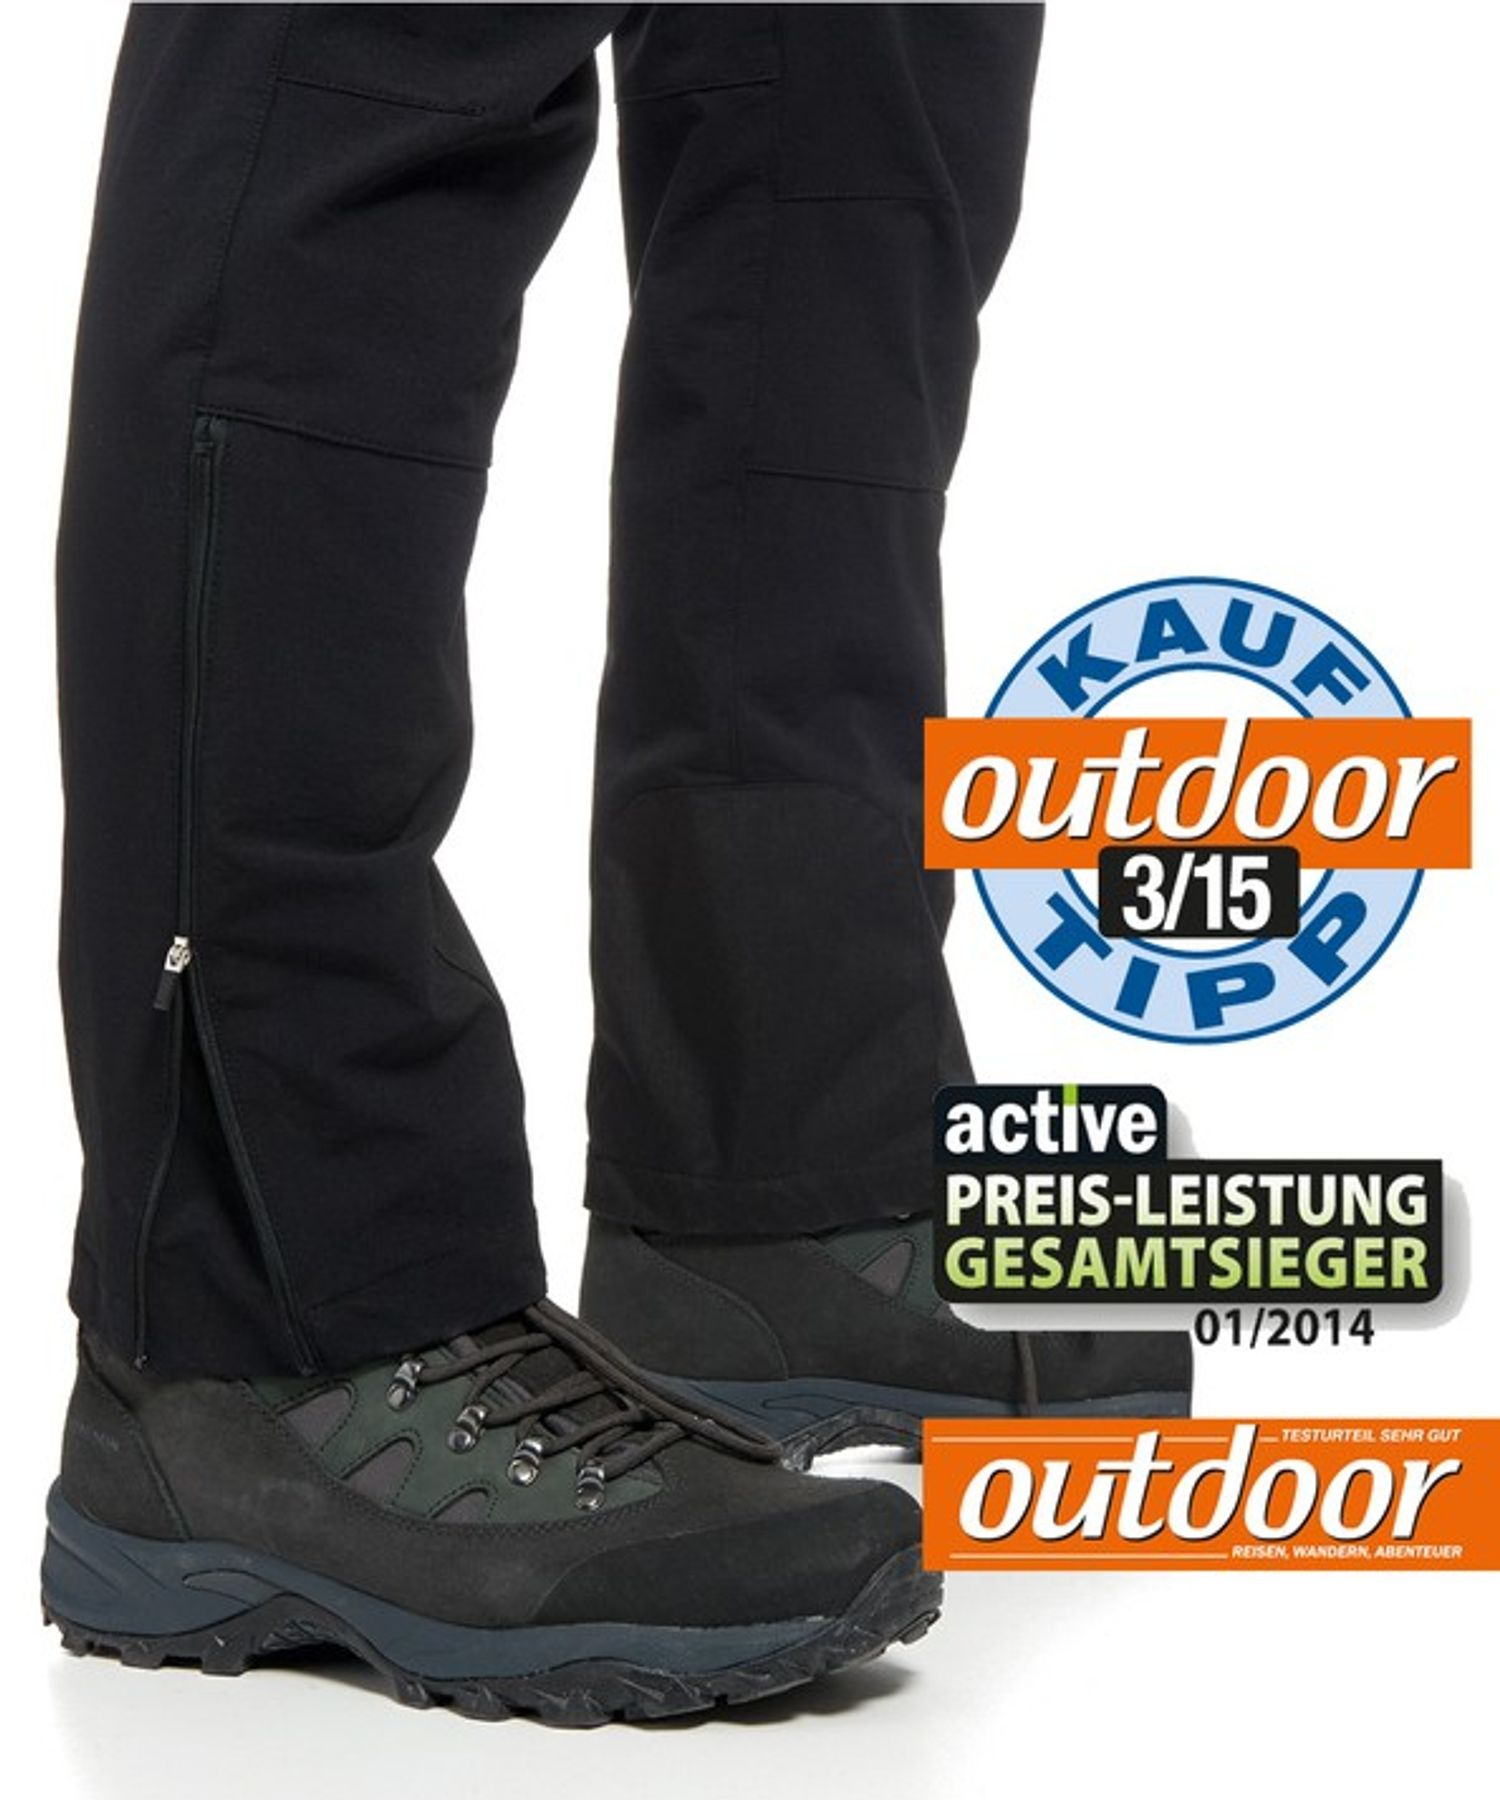 Maier Sports- Herren Outdoor- Touren - und Wanderhose in Black Artikel Naturno (136003) – Bild 3